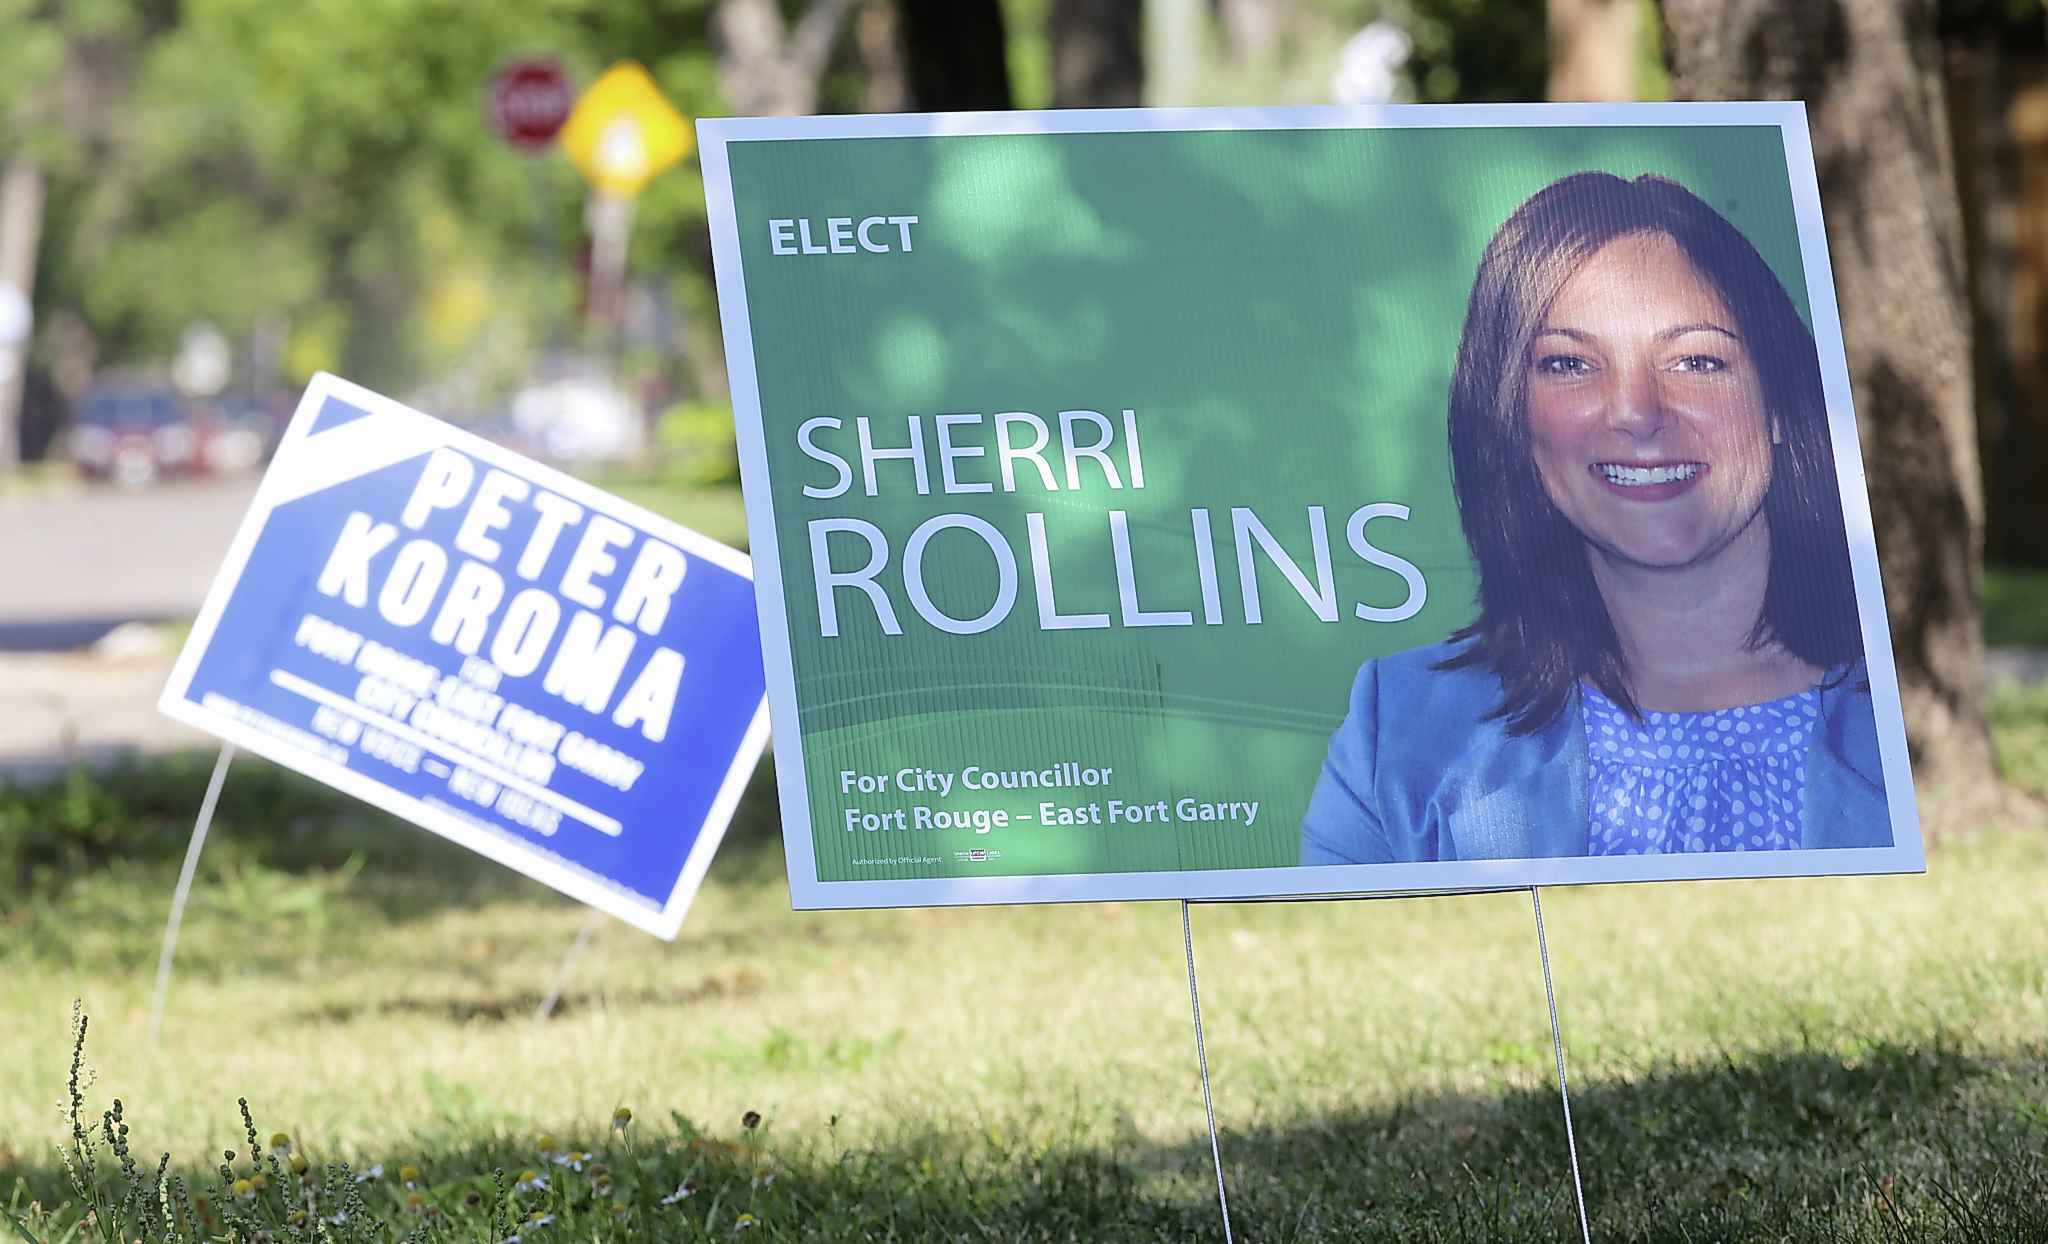 Election signs for Peter Koroma and Sherri Rollins for the city council seat for Fort Rouge.